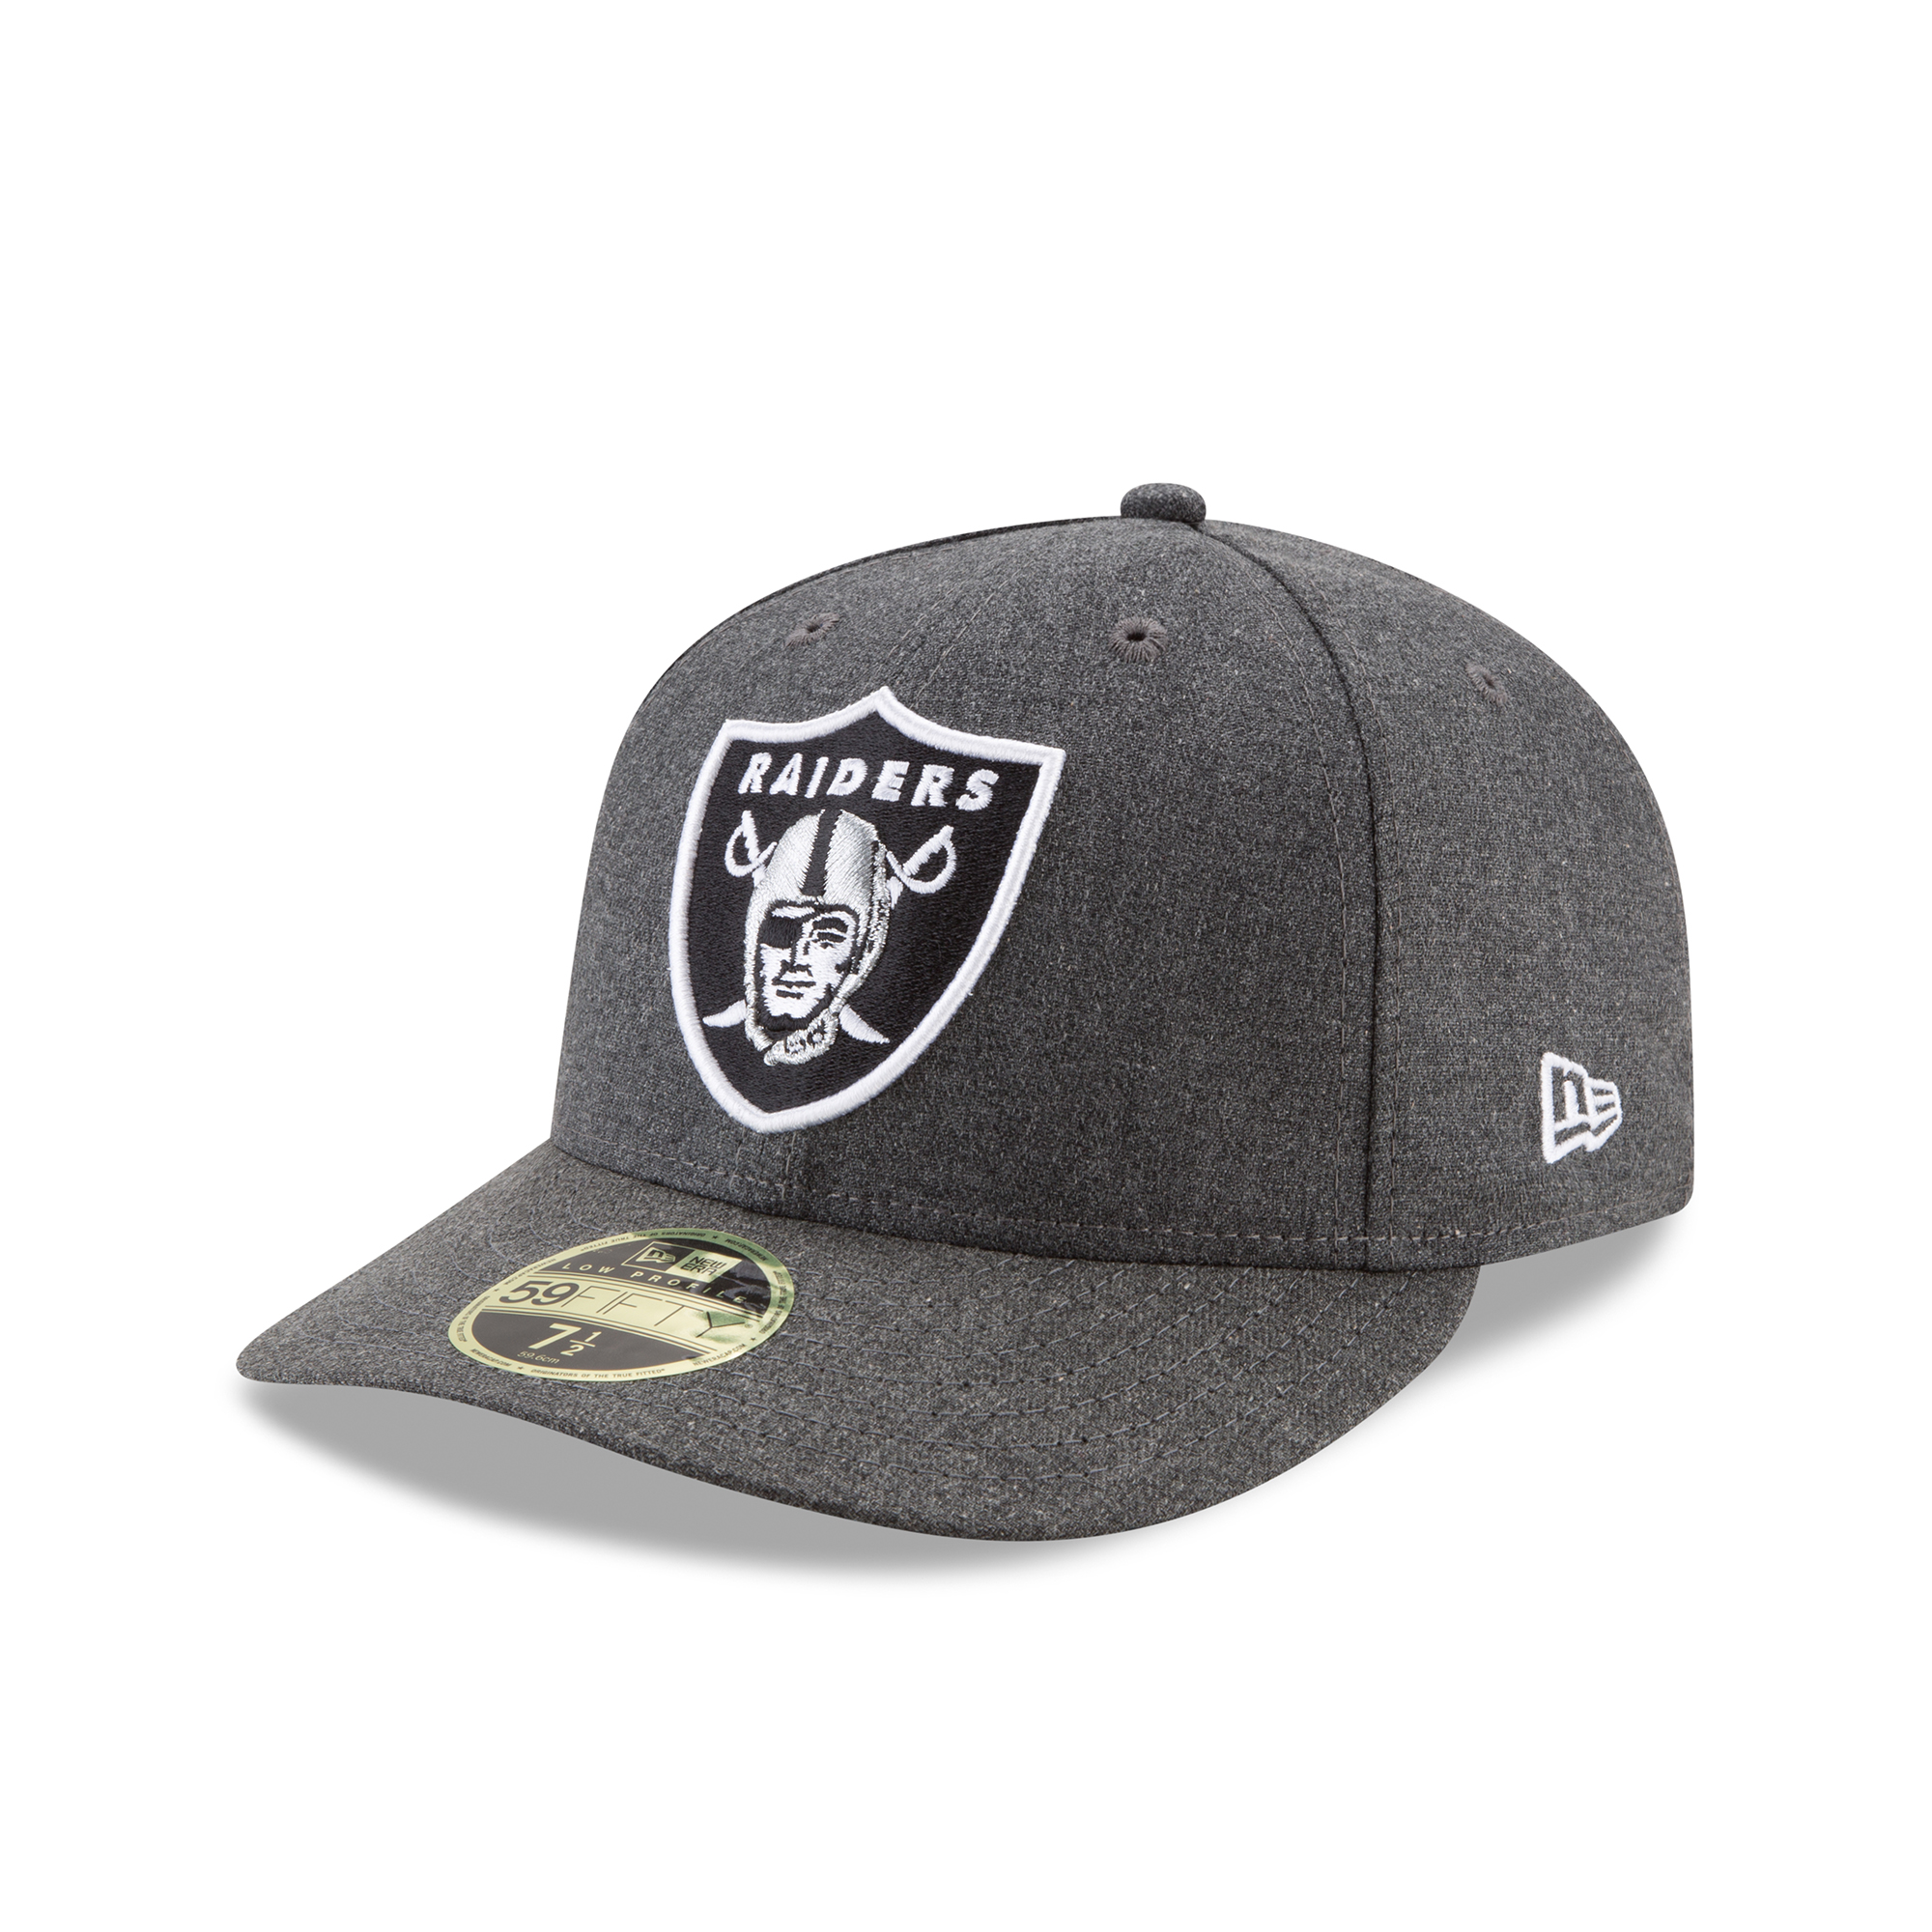 """Las Vegas Raiders """"Crafted In The USA"""" New Era Kappe der 59FIFTY®"""